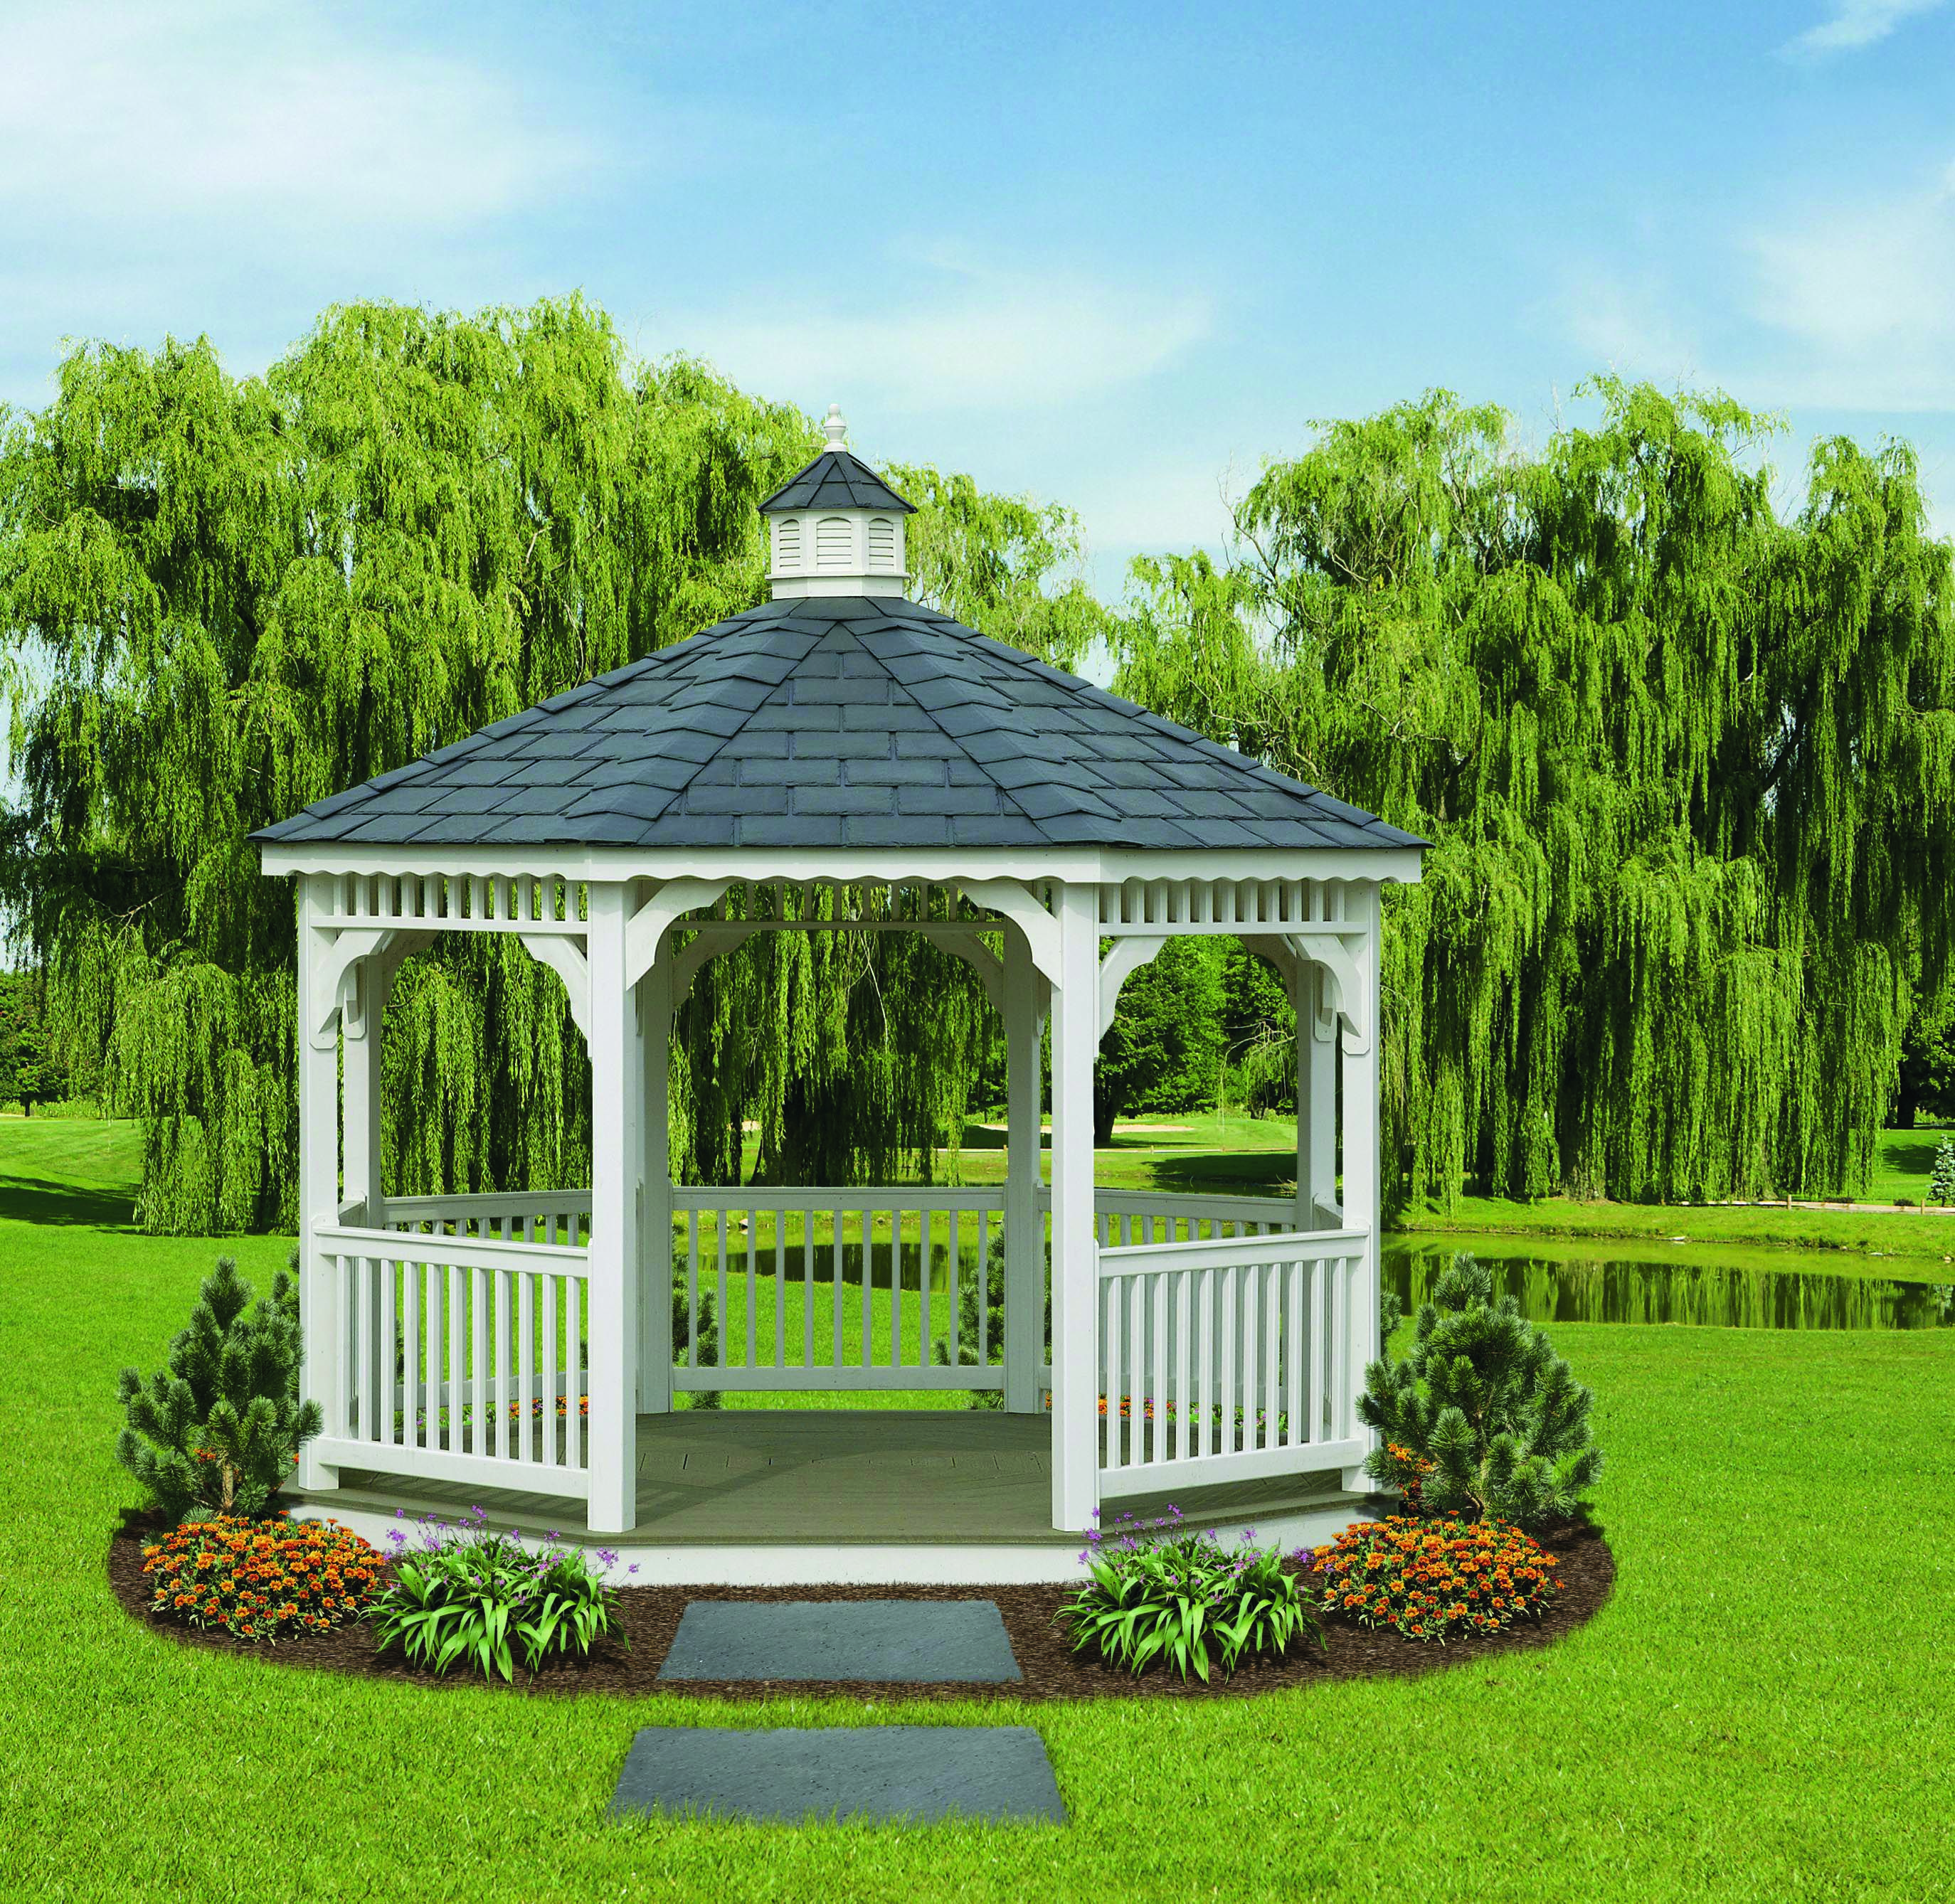 12 ' Octagon Vinyl Gazebo will create an outdoor living space for you to entertain your friends and families